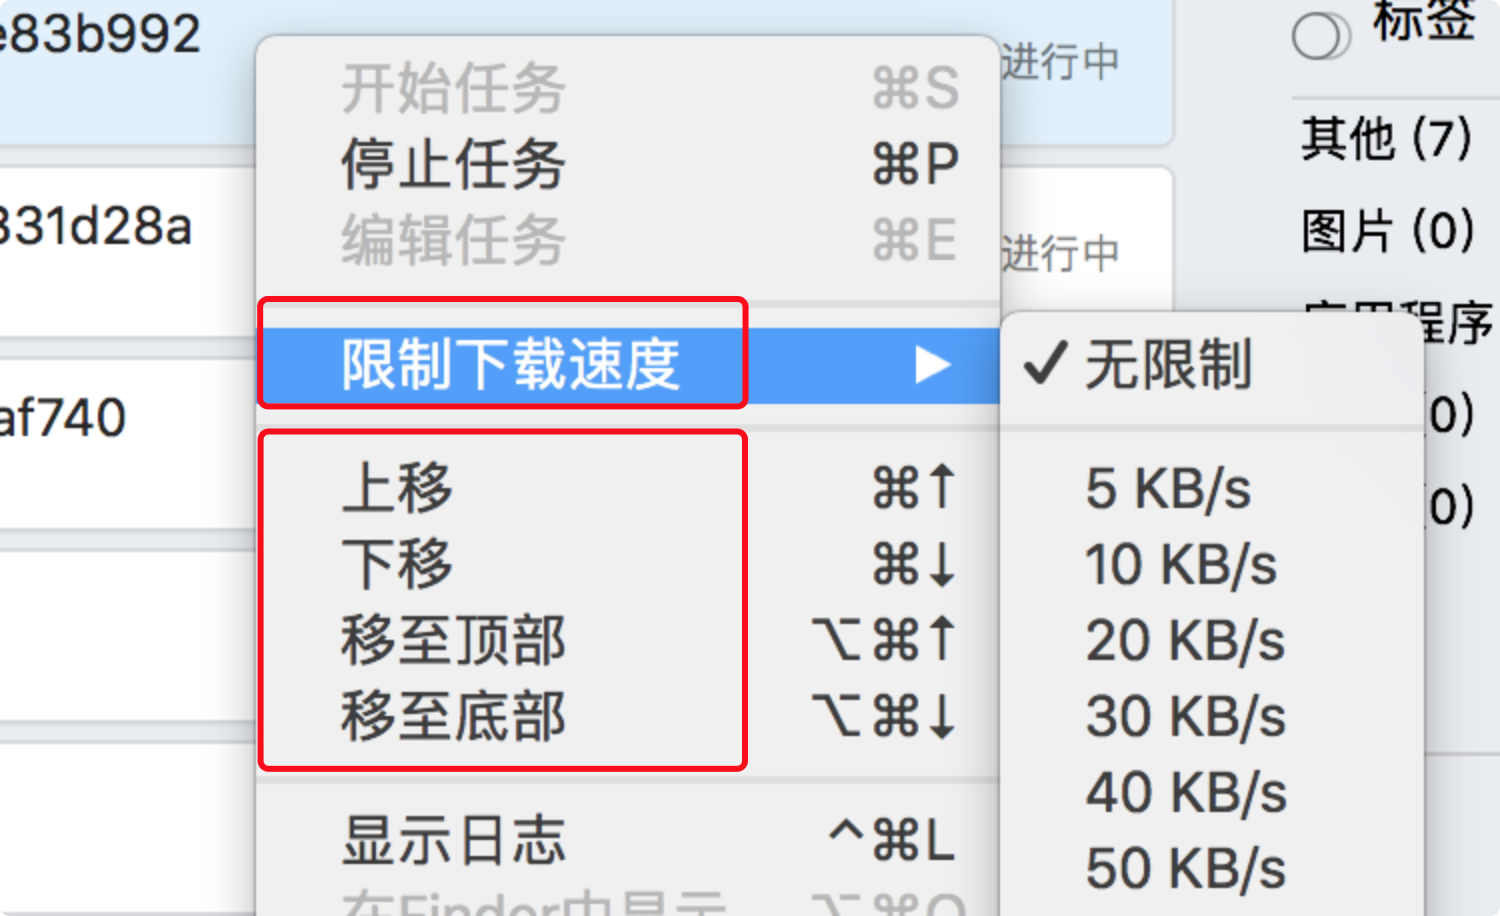 ../Library/Containers/com.tencent.qq/Data/Library/Caches/Images/88B228AB49AFBFED970F3FA3BA626B16.png